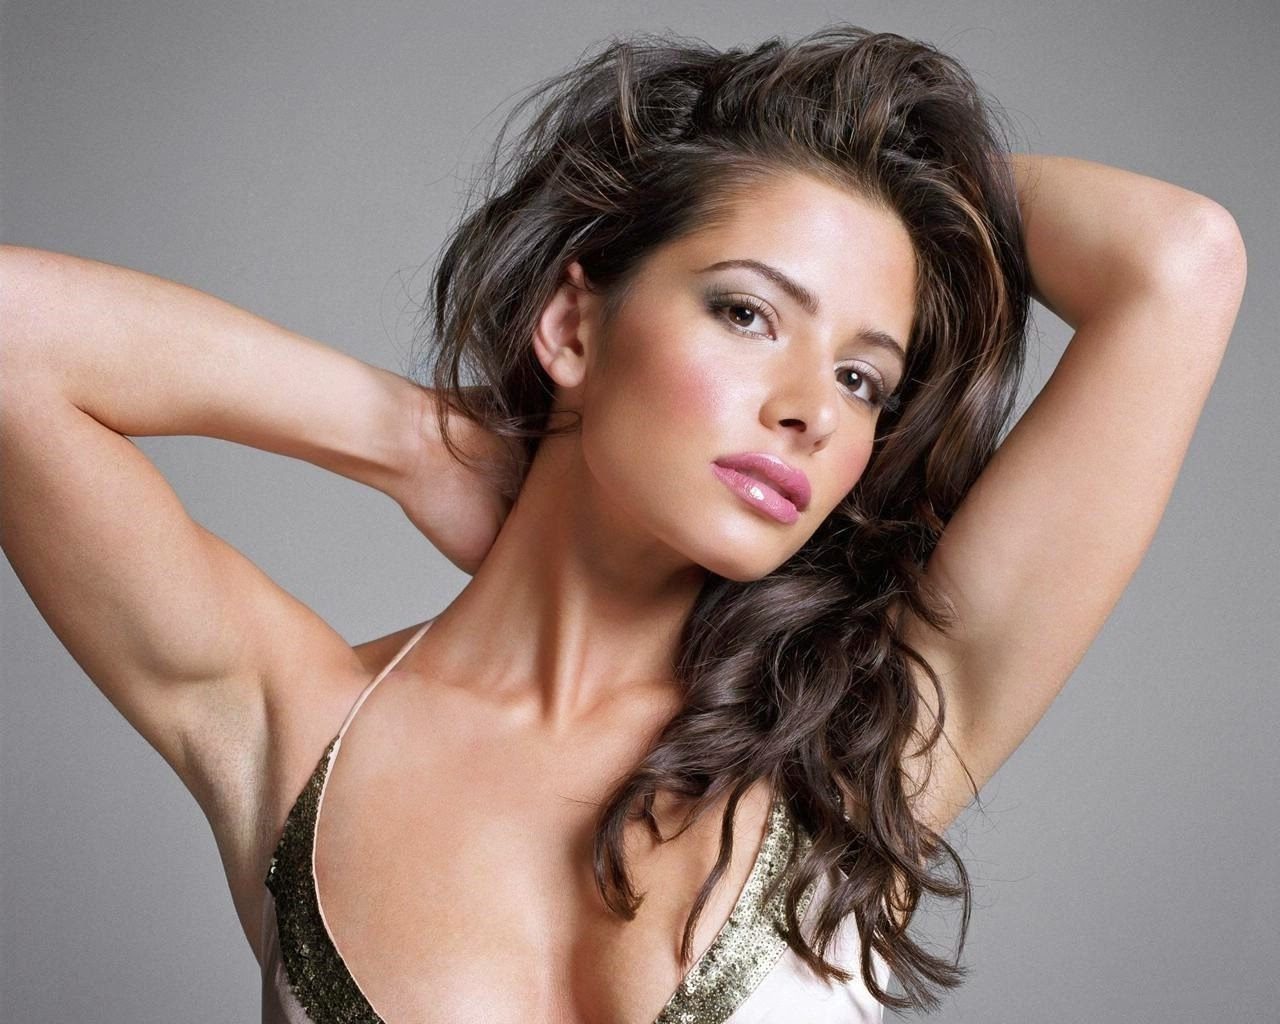 Actresses nude selfi Sarah Shahi Sexy Nude Pictures from Hacked iPhone Selfies - Daily Photo  Likes